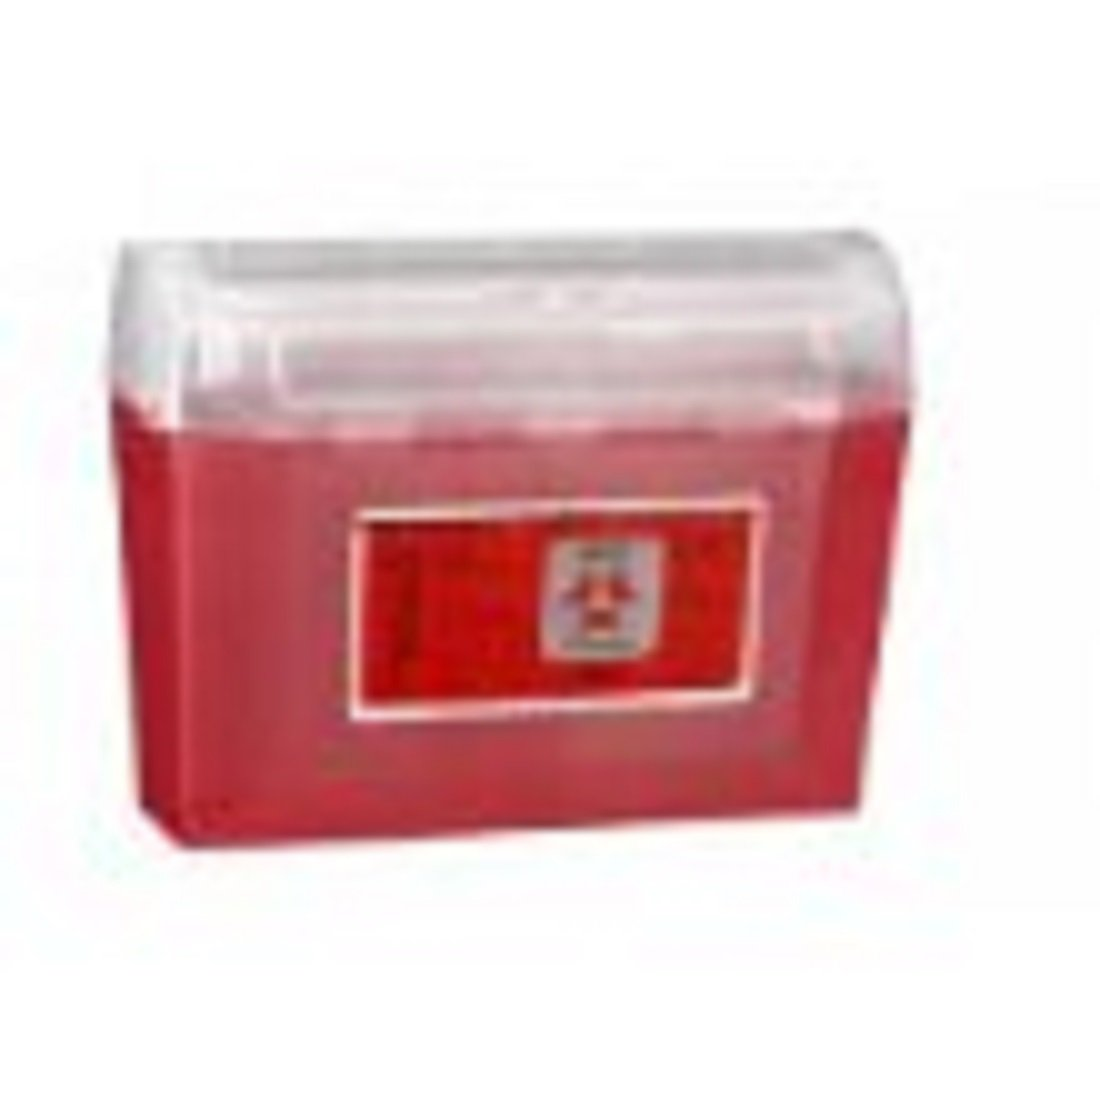 SharpSafety Large Volume Sharps Container, Hing Sharps Cntnr 8 Gal Red, (1 CASE, 10 EACH)